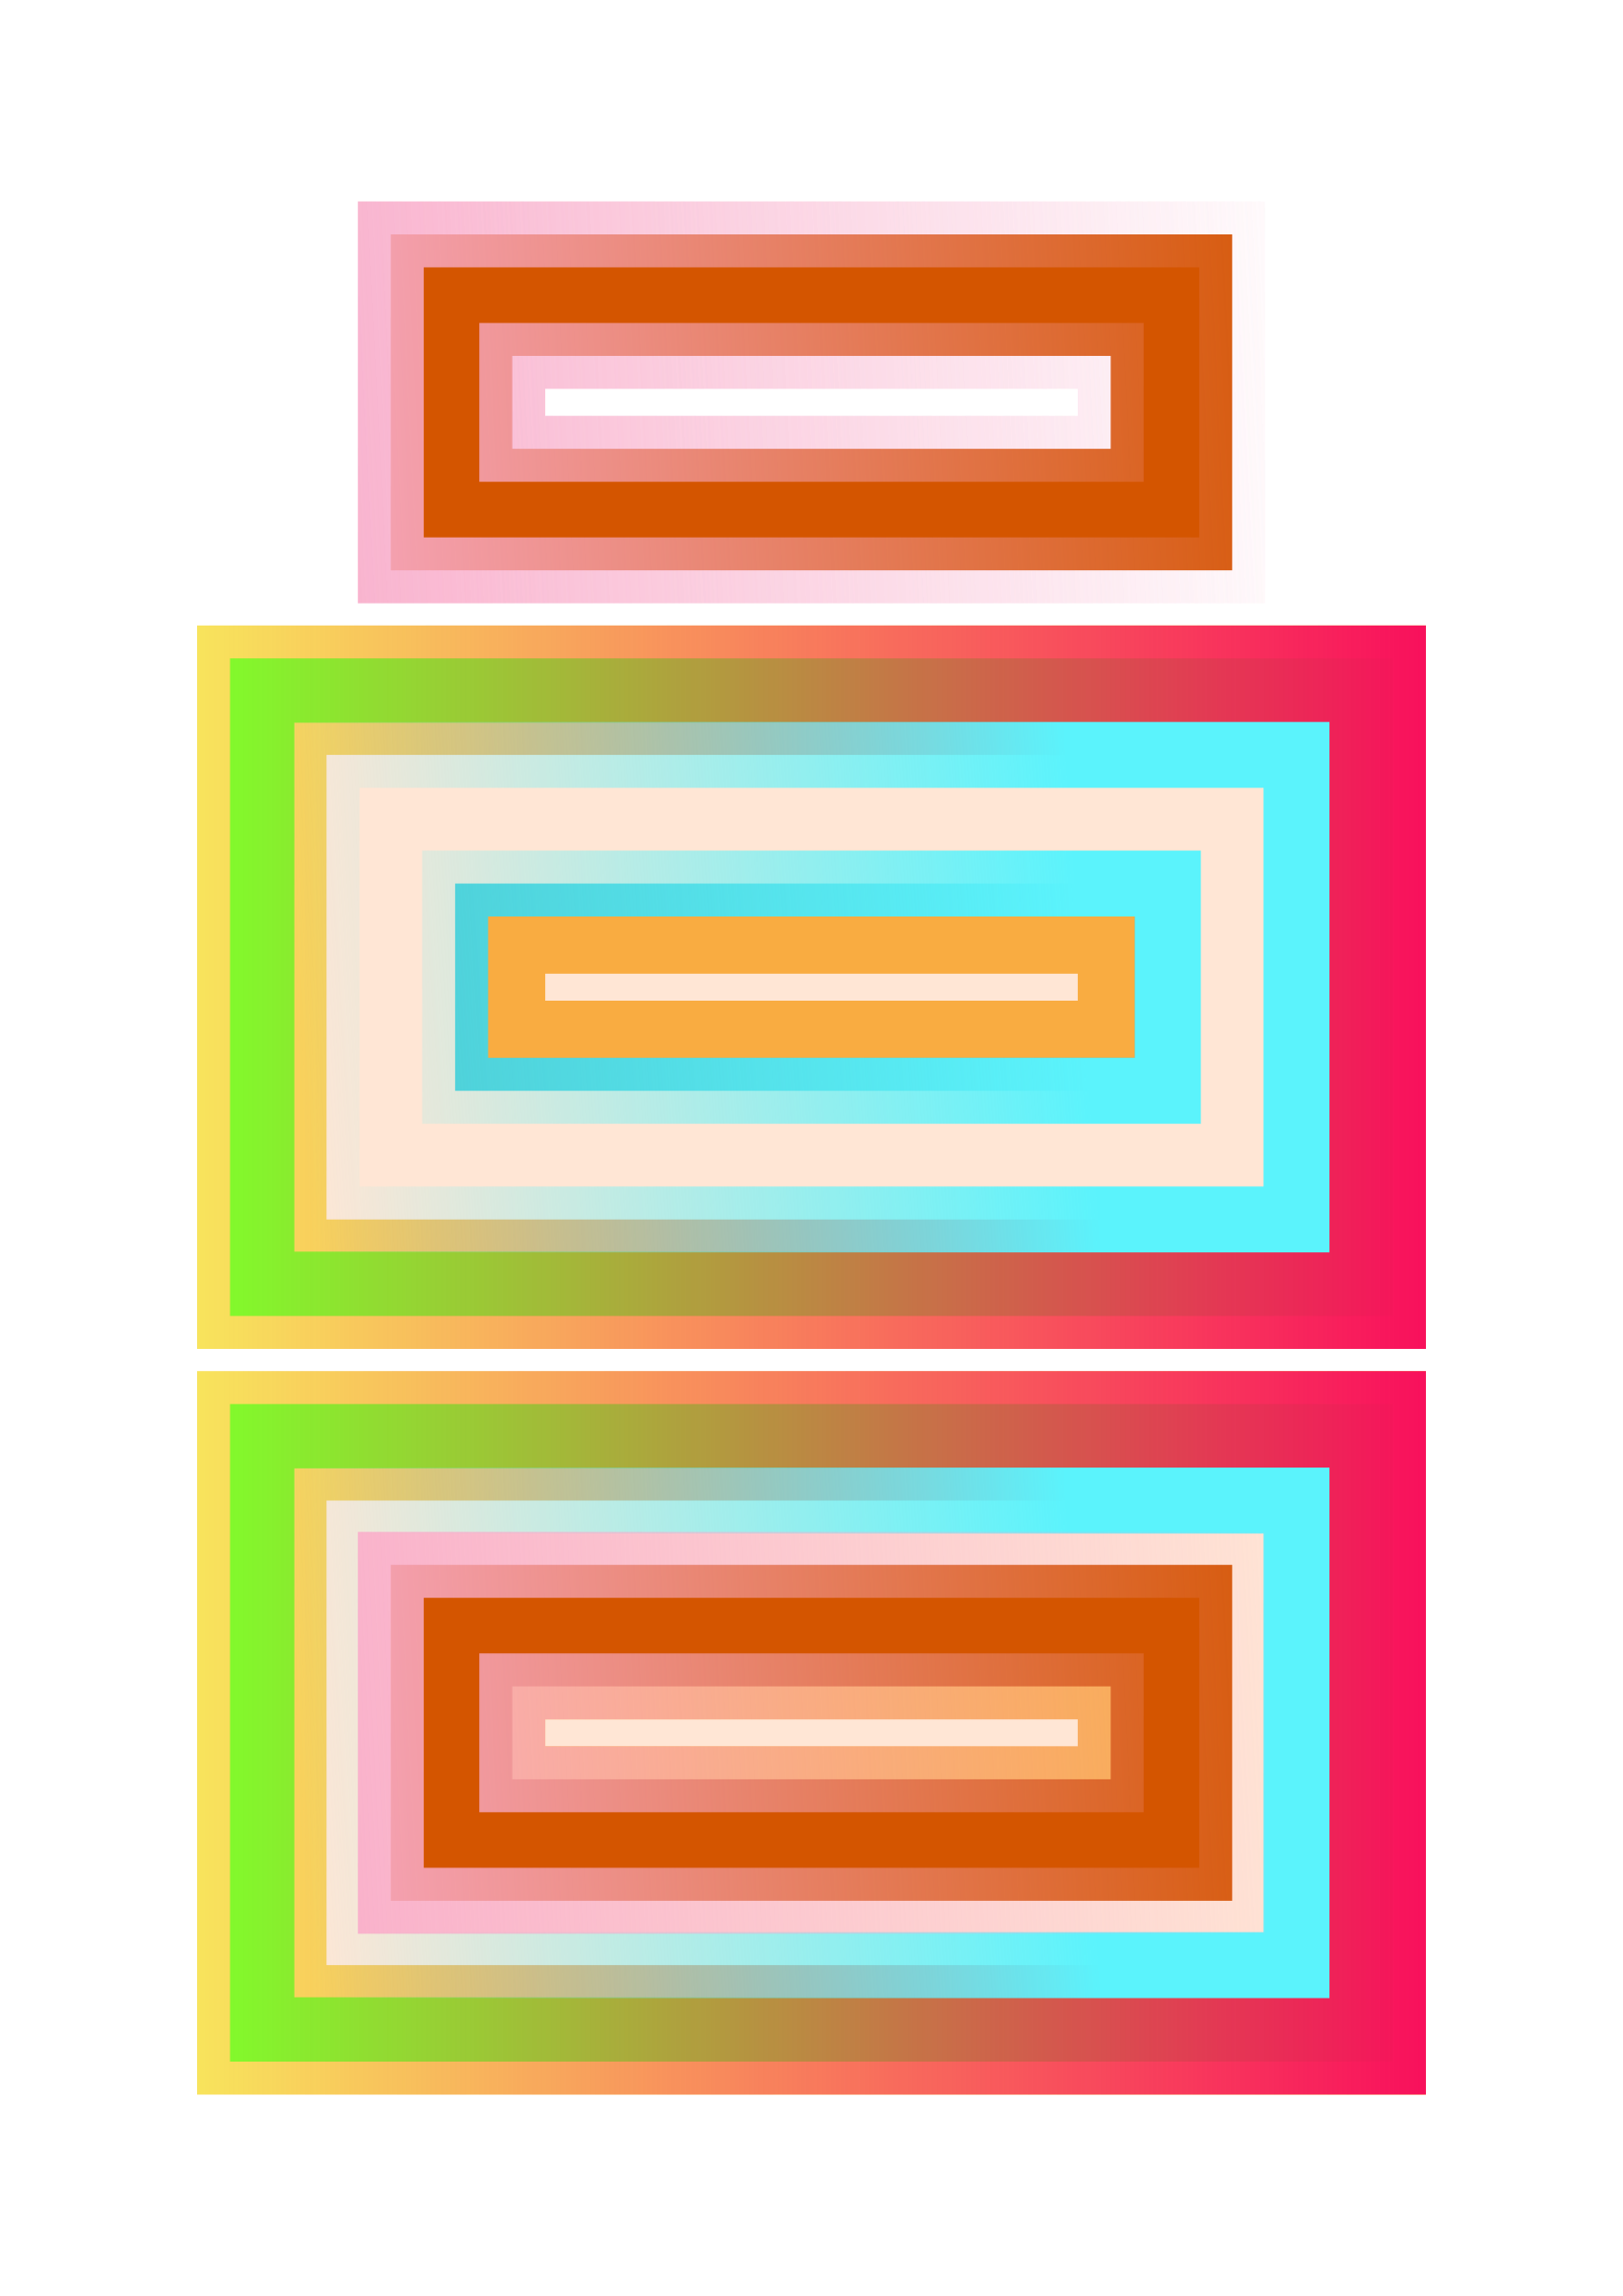 Rectangles by 28victorydesign